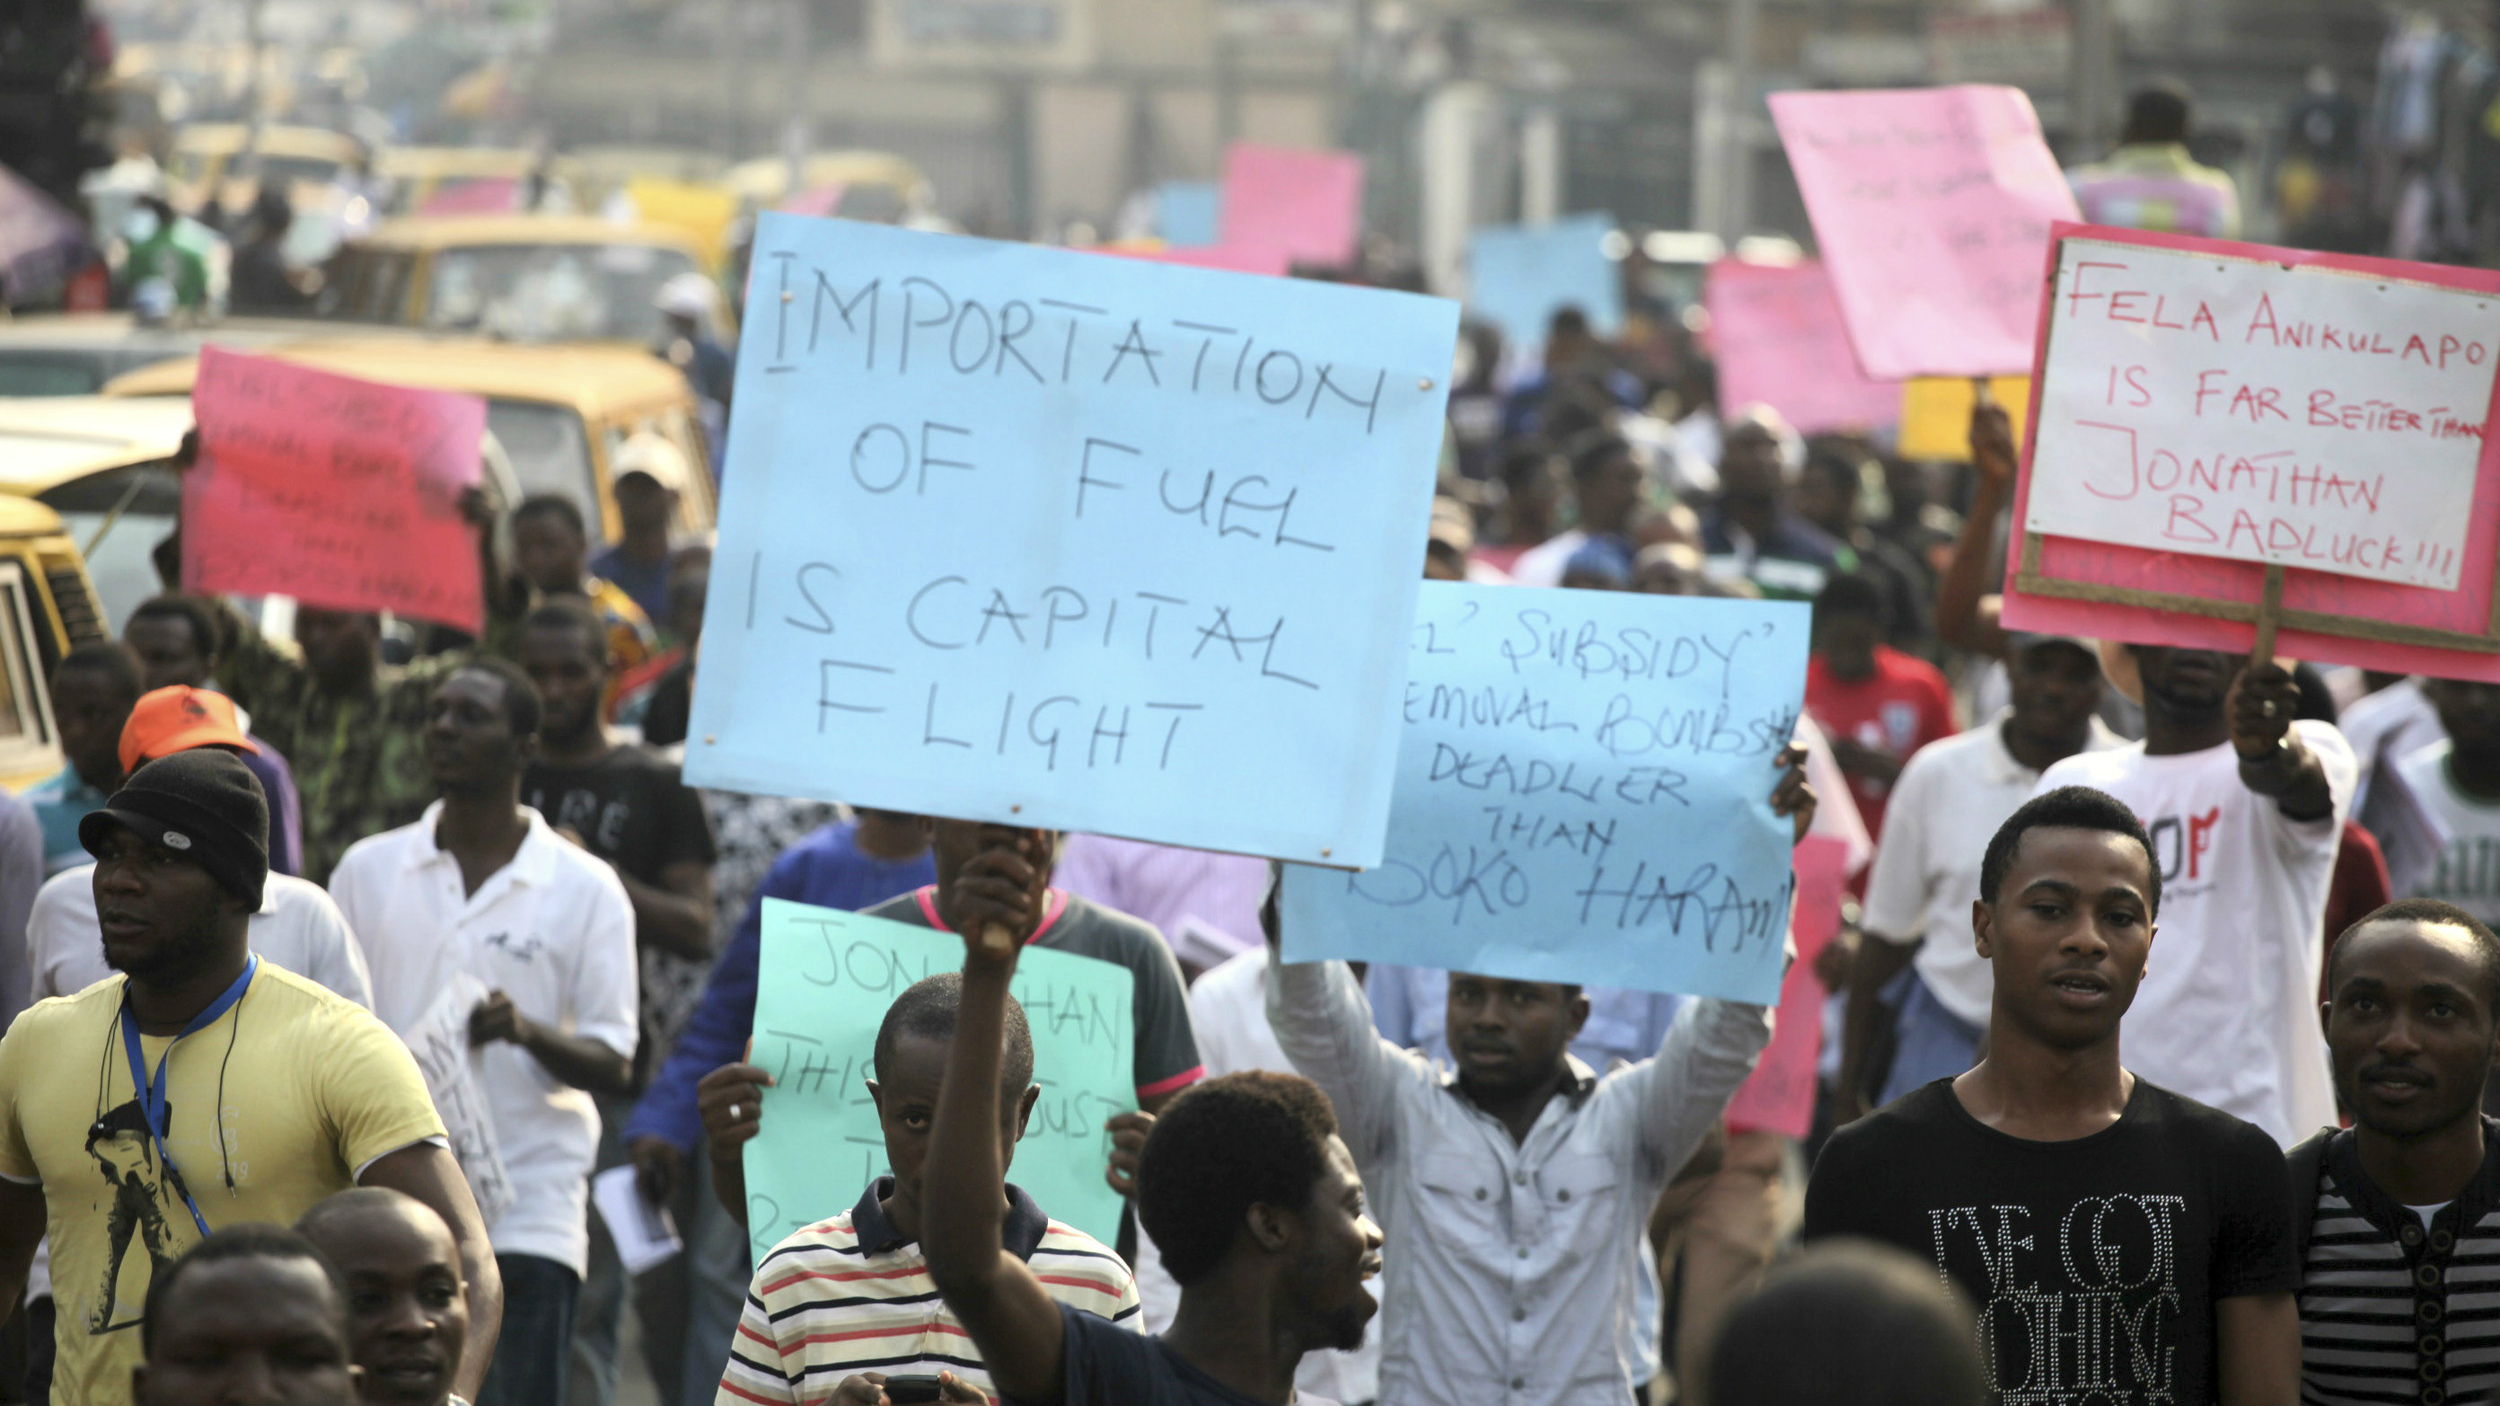 Protesters gather during a rally against fuel subsidy removal on Ikorodu road in Nigeria's commercial capital Lagos January 3, 2012. Hundreds of demonstrators in Nigeria's commercial capital Lagos shut petrol stations, formed human barriers along motorways and hijacked buses on Tuesday in protest against the shock doubling of fuel prices after a government subsidy was removed. REUTERS/Akintunde Akinleye (NIGERIA - Tags: CIVIL UNREST POLITICS ENERGY)